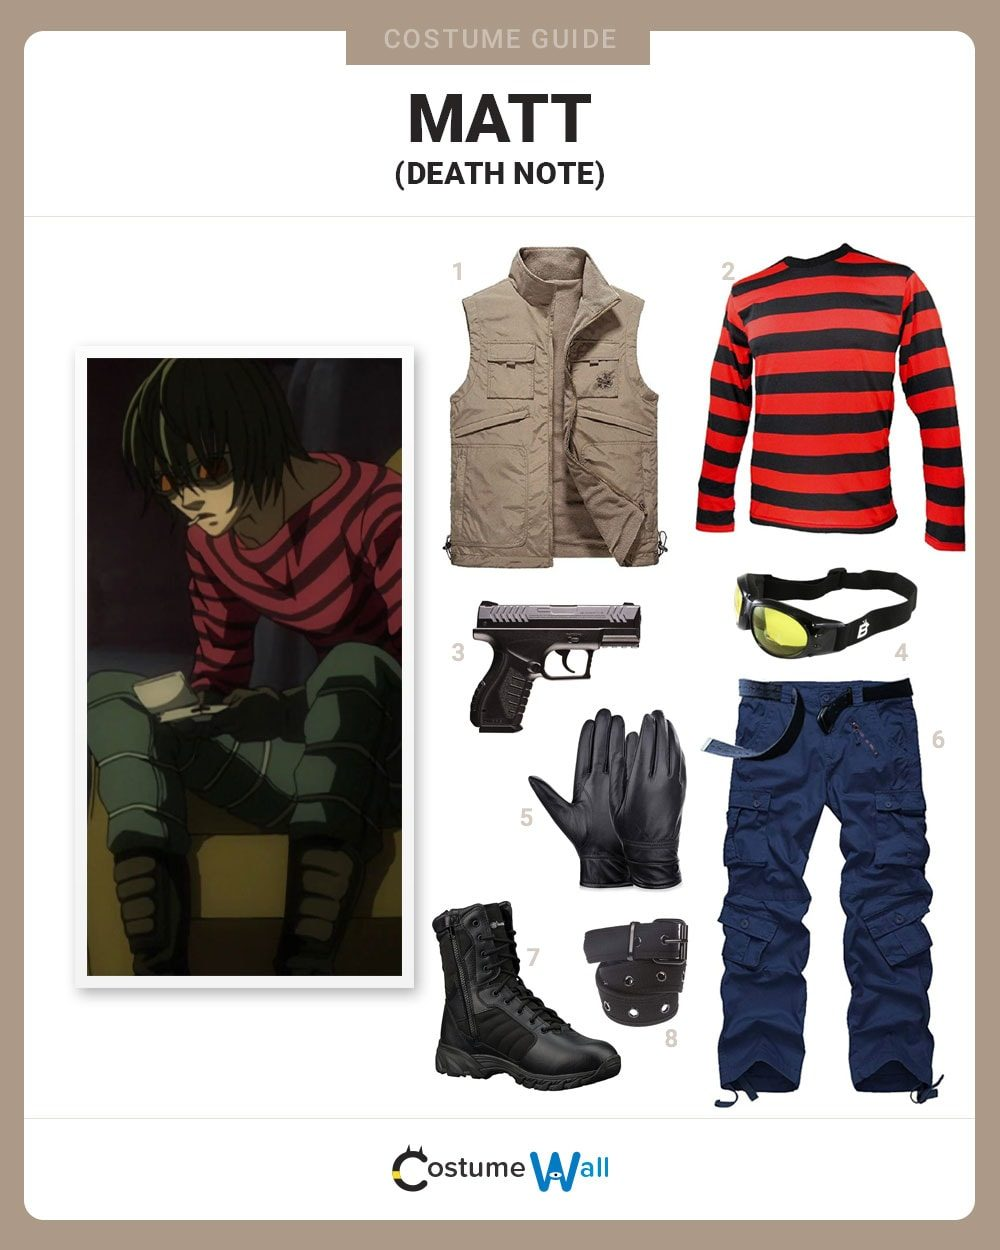 Matt from Death Note Costume Guide